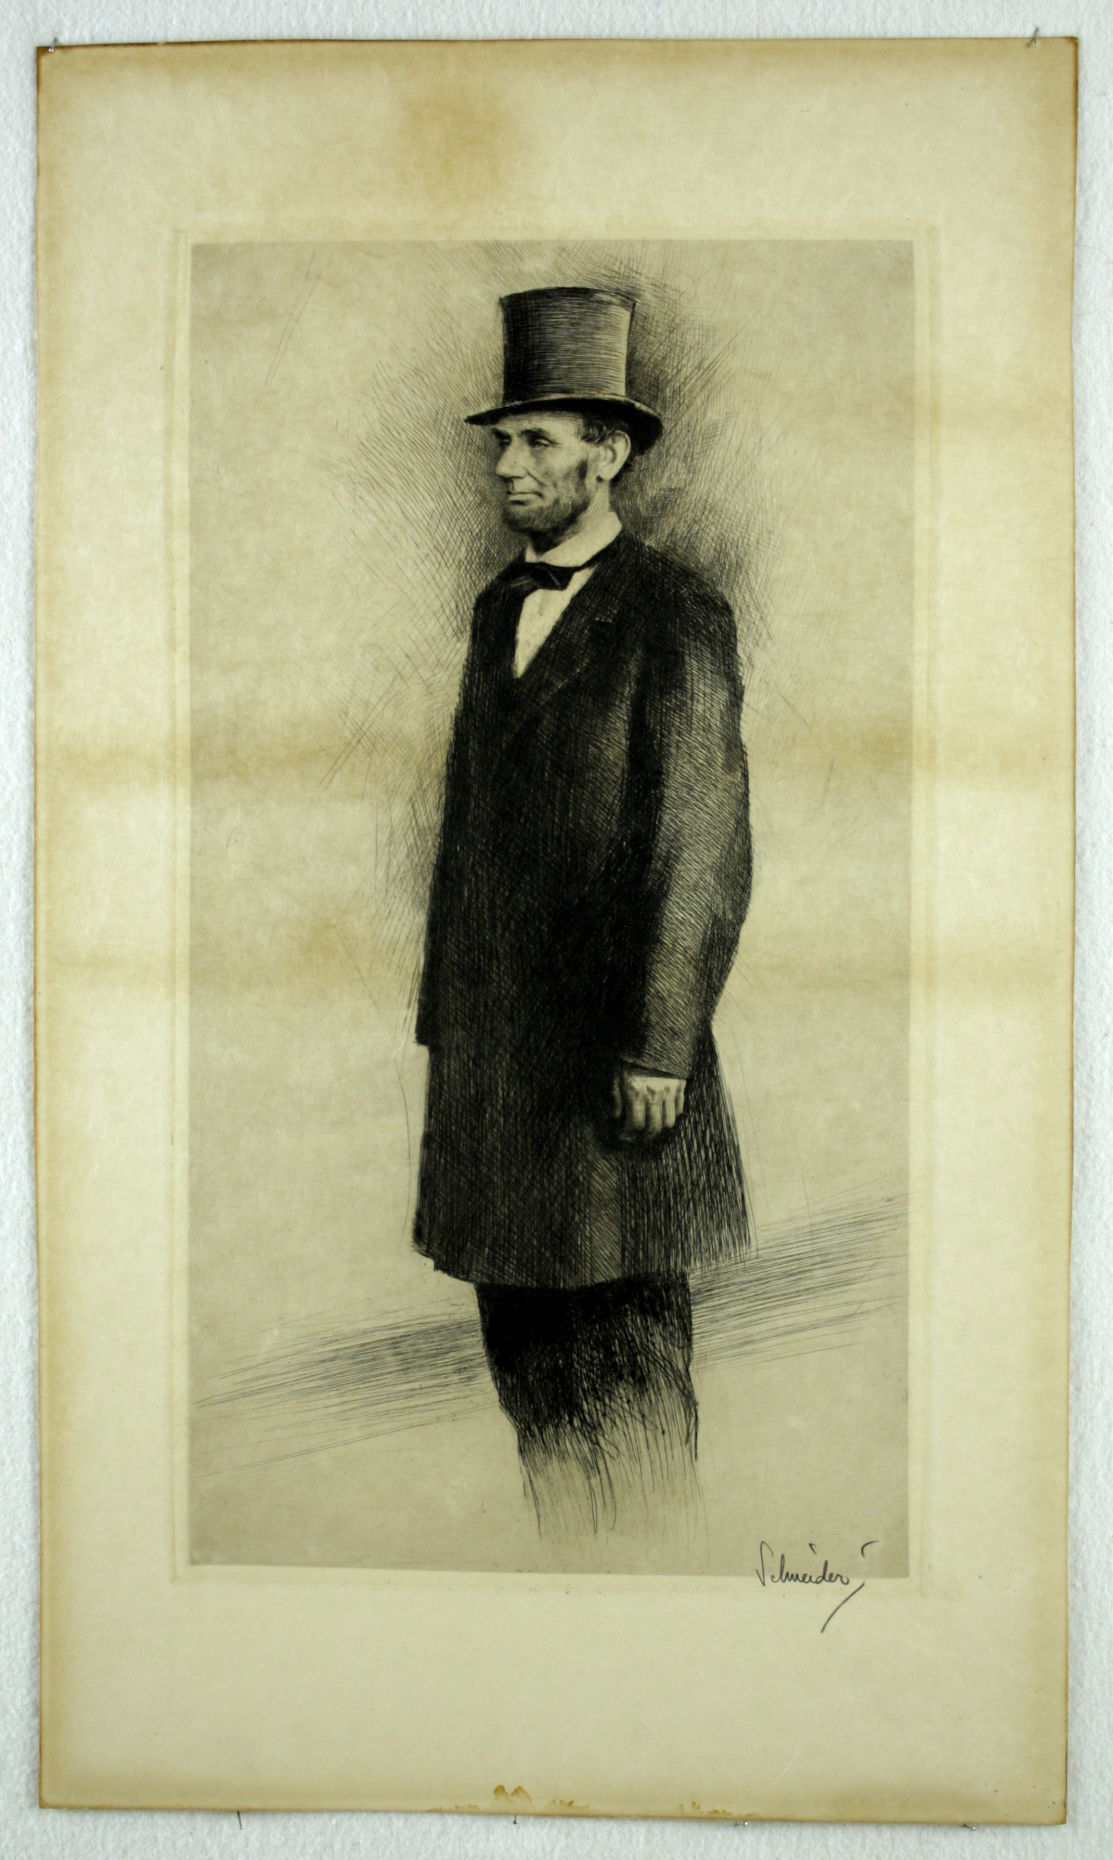 Things That Matter: Remembering President Abraham Lincoln